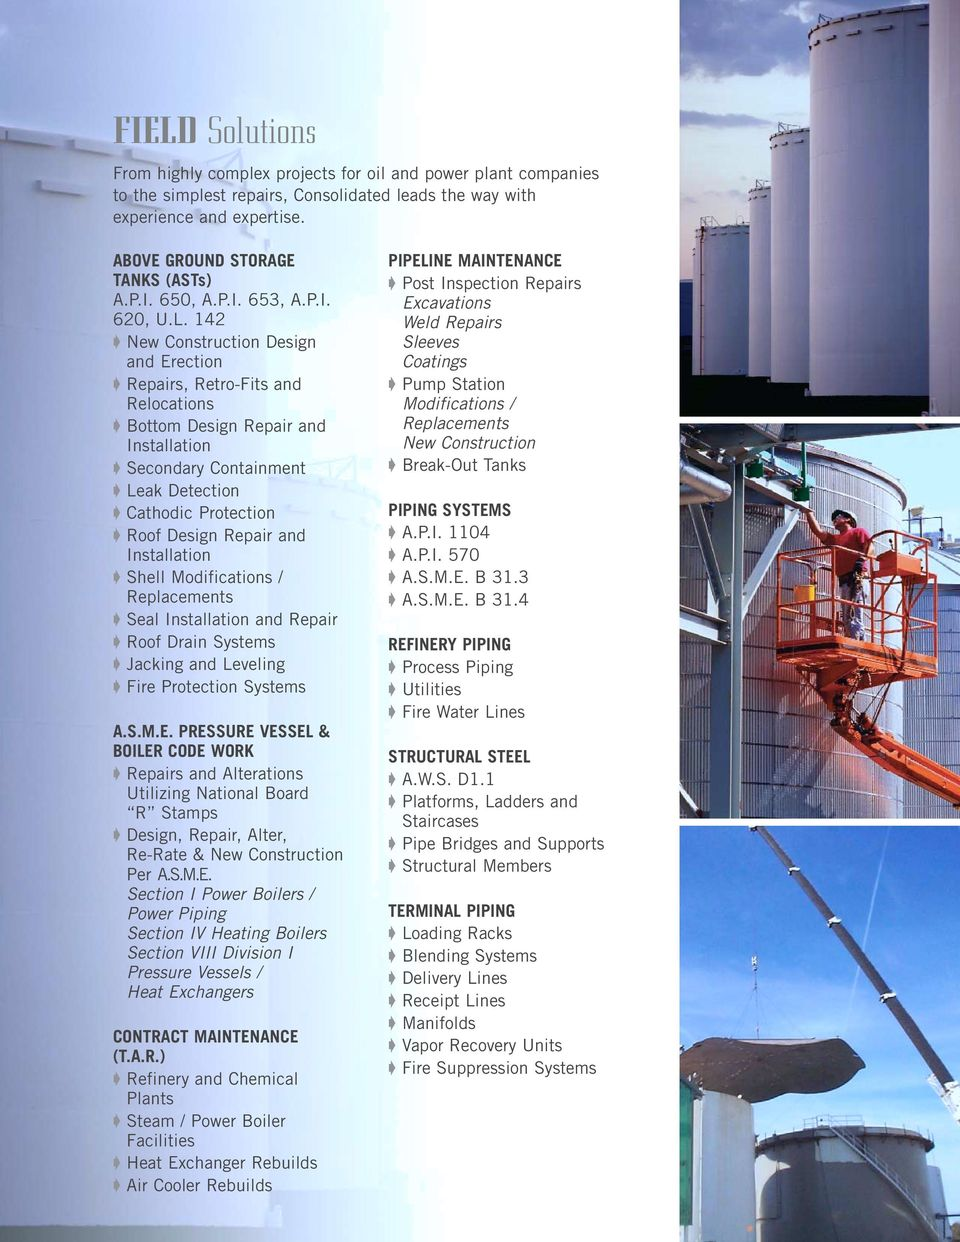 142 New Construction Design and Erection Repairs, Retro-Fits and Relocations Bottom Design Repair and Installation Secondary Containment Leak Detection Cathodic Protection Roof Design Repair and